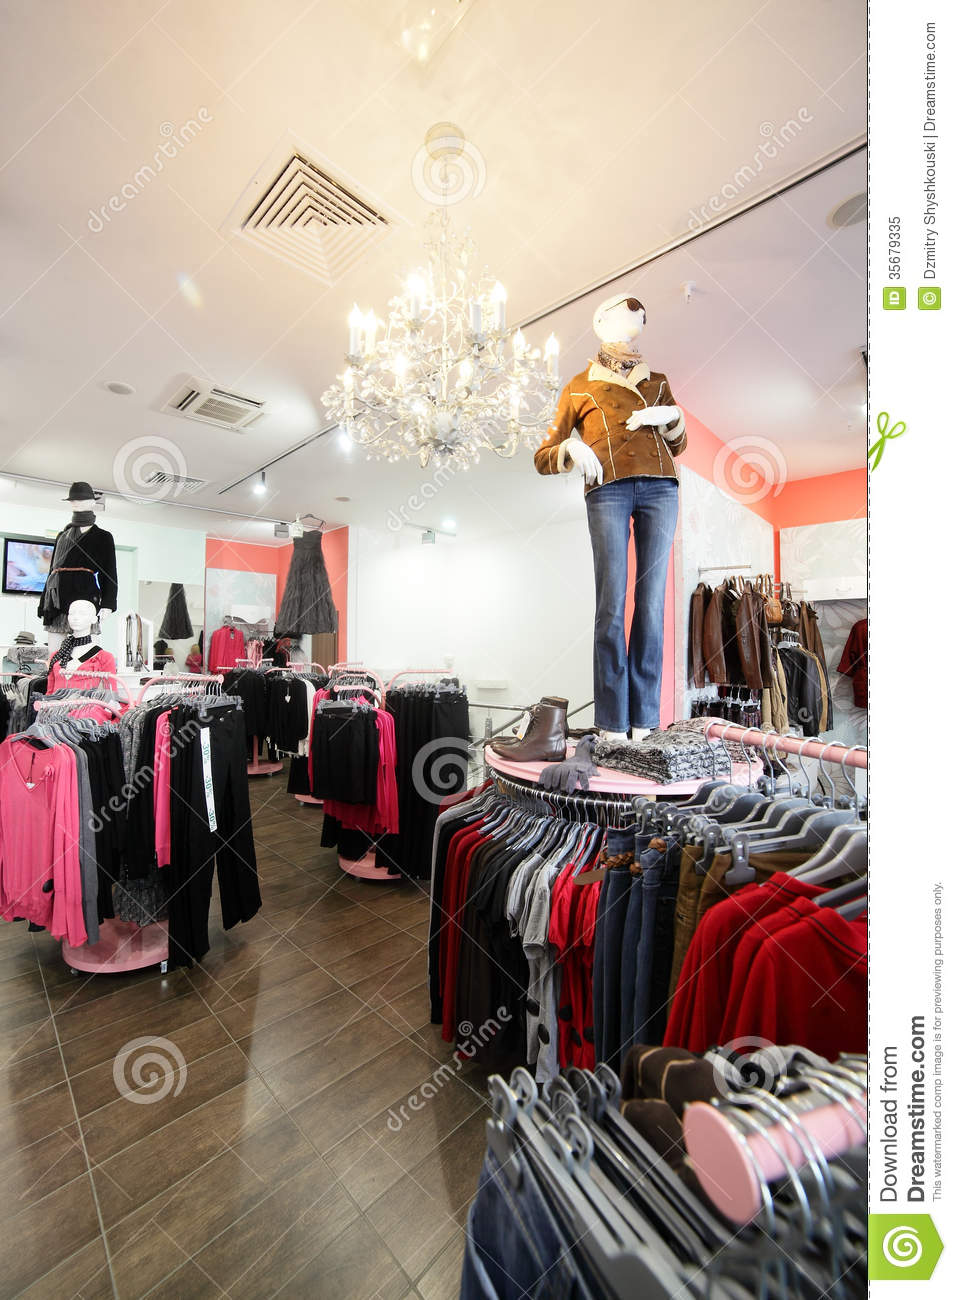 nirtsnom.tk offers European Clothing Stores Online at cheap prices, so you can shop from a huge selection of European Clothing Stores Online, FREE Shipping available worldwide.